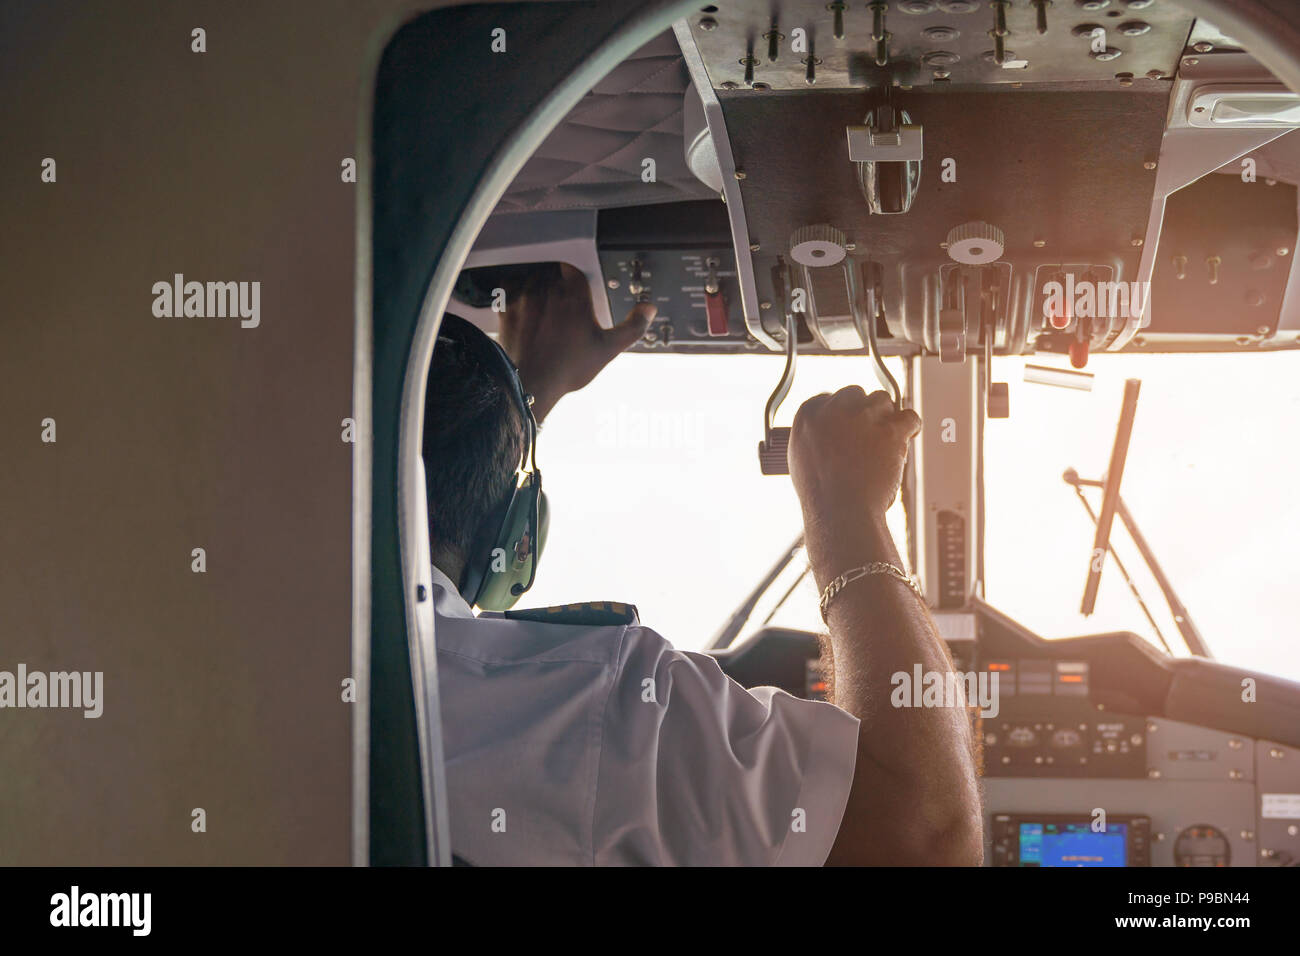 Interior details of airplane with pilot on board while flying, on white sky background. - Stock Image